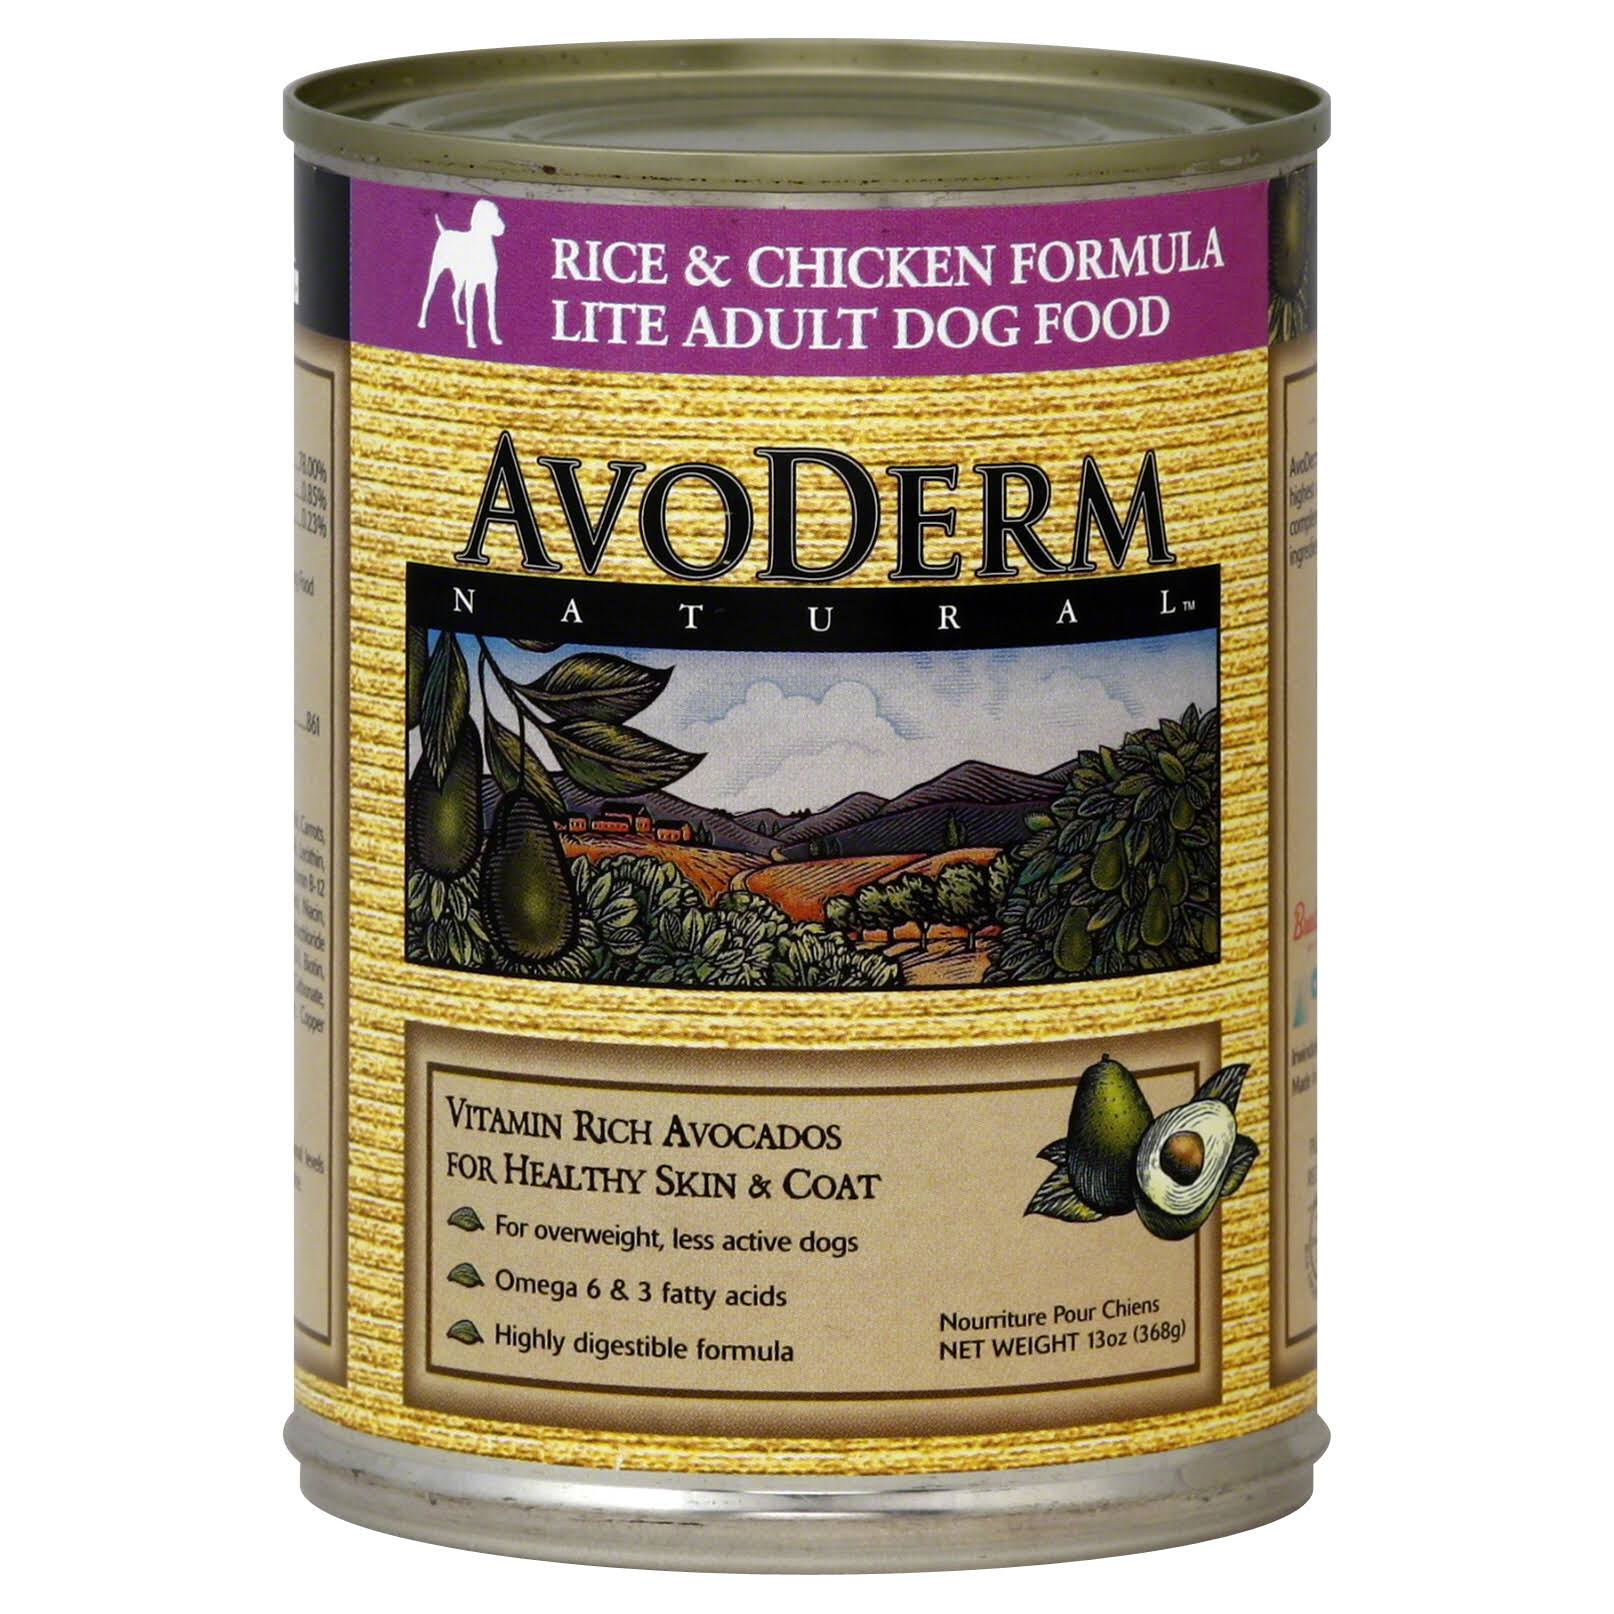 AvoDerm Rice and Chicken Formula Weight Control Dog Food - 13oz